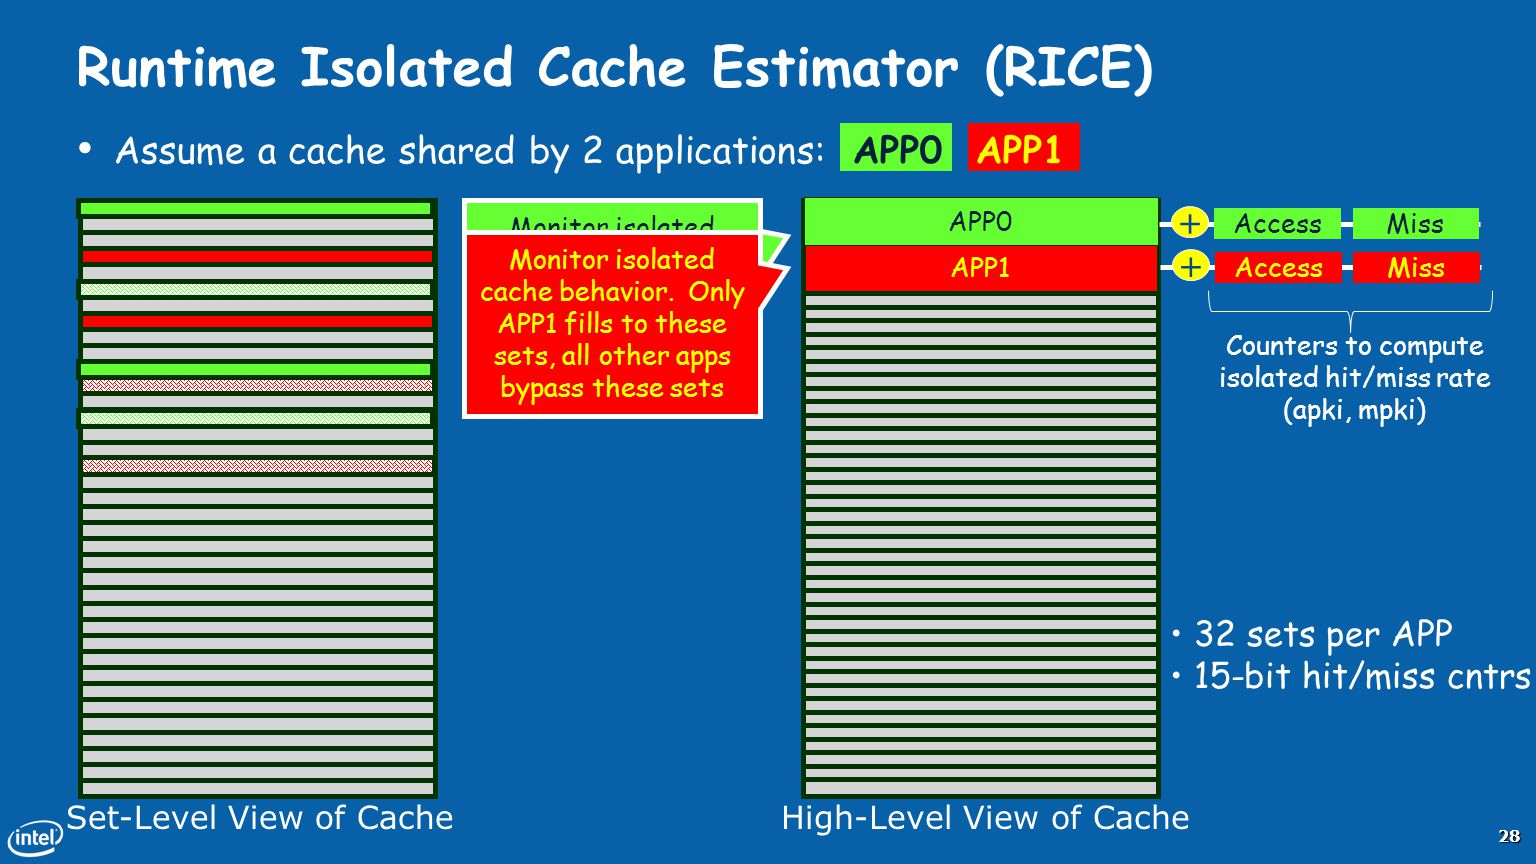 Runtime Isolated Cache Estimator (RICE)